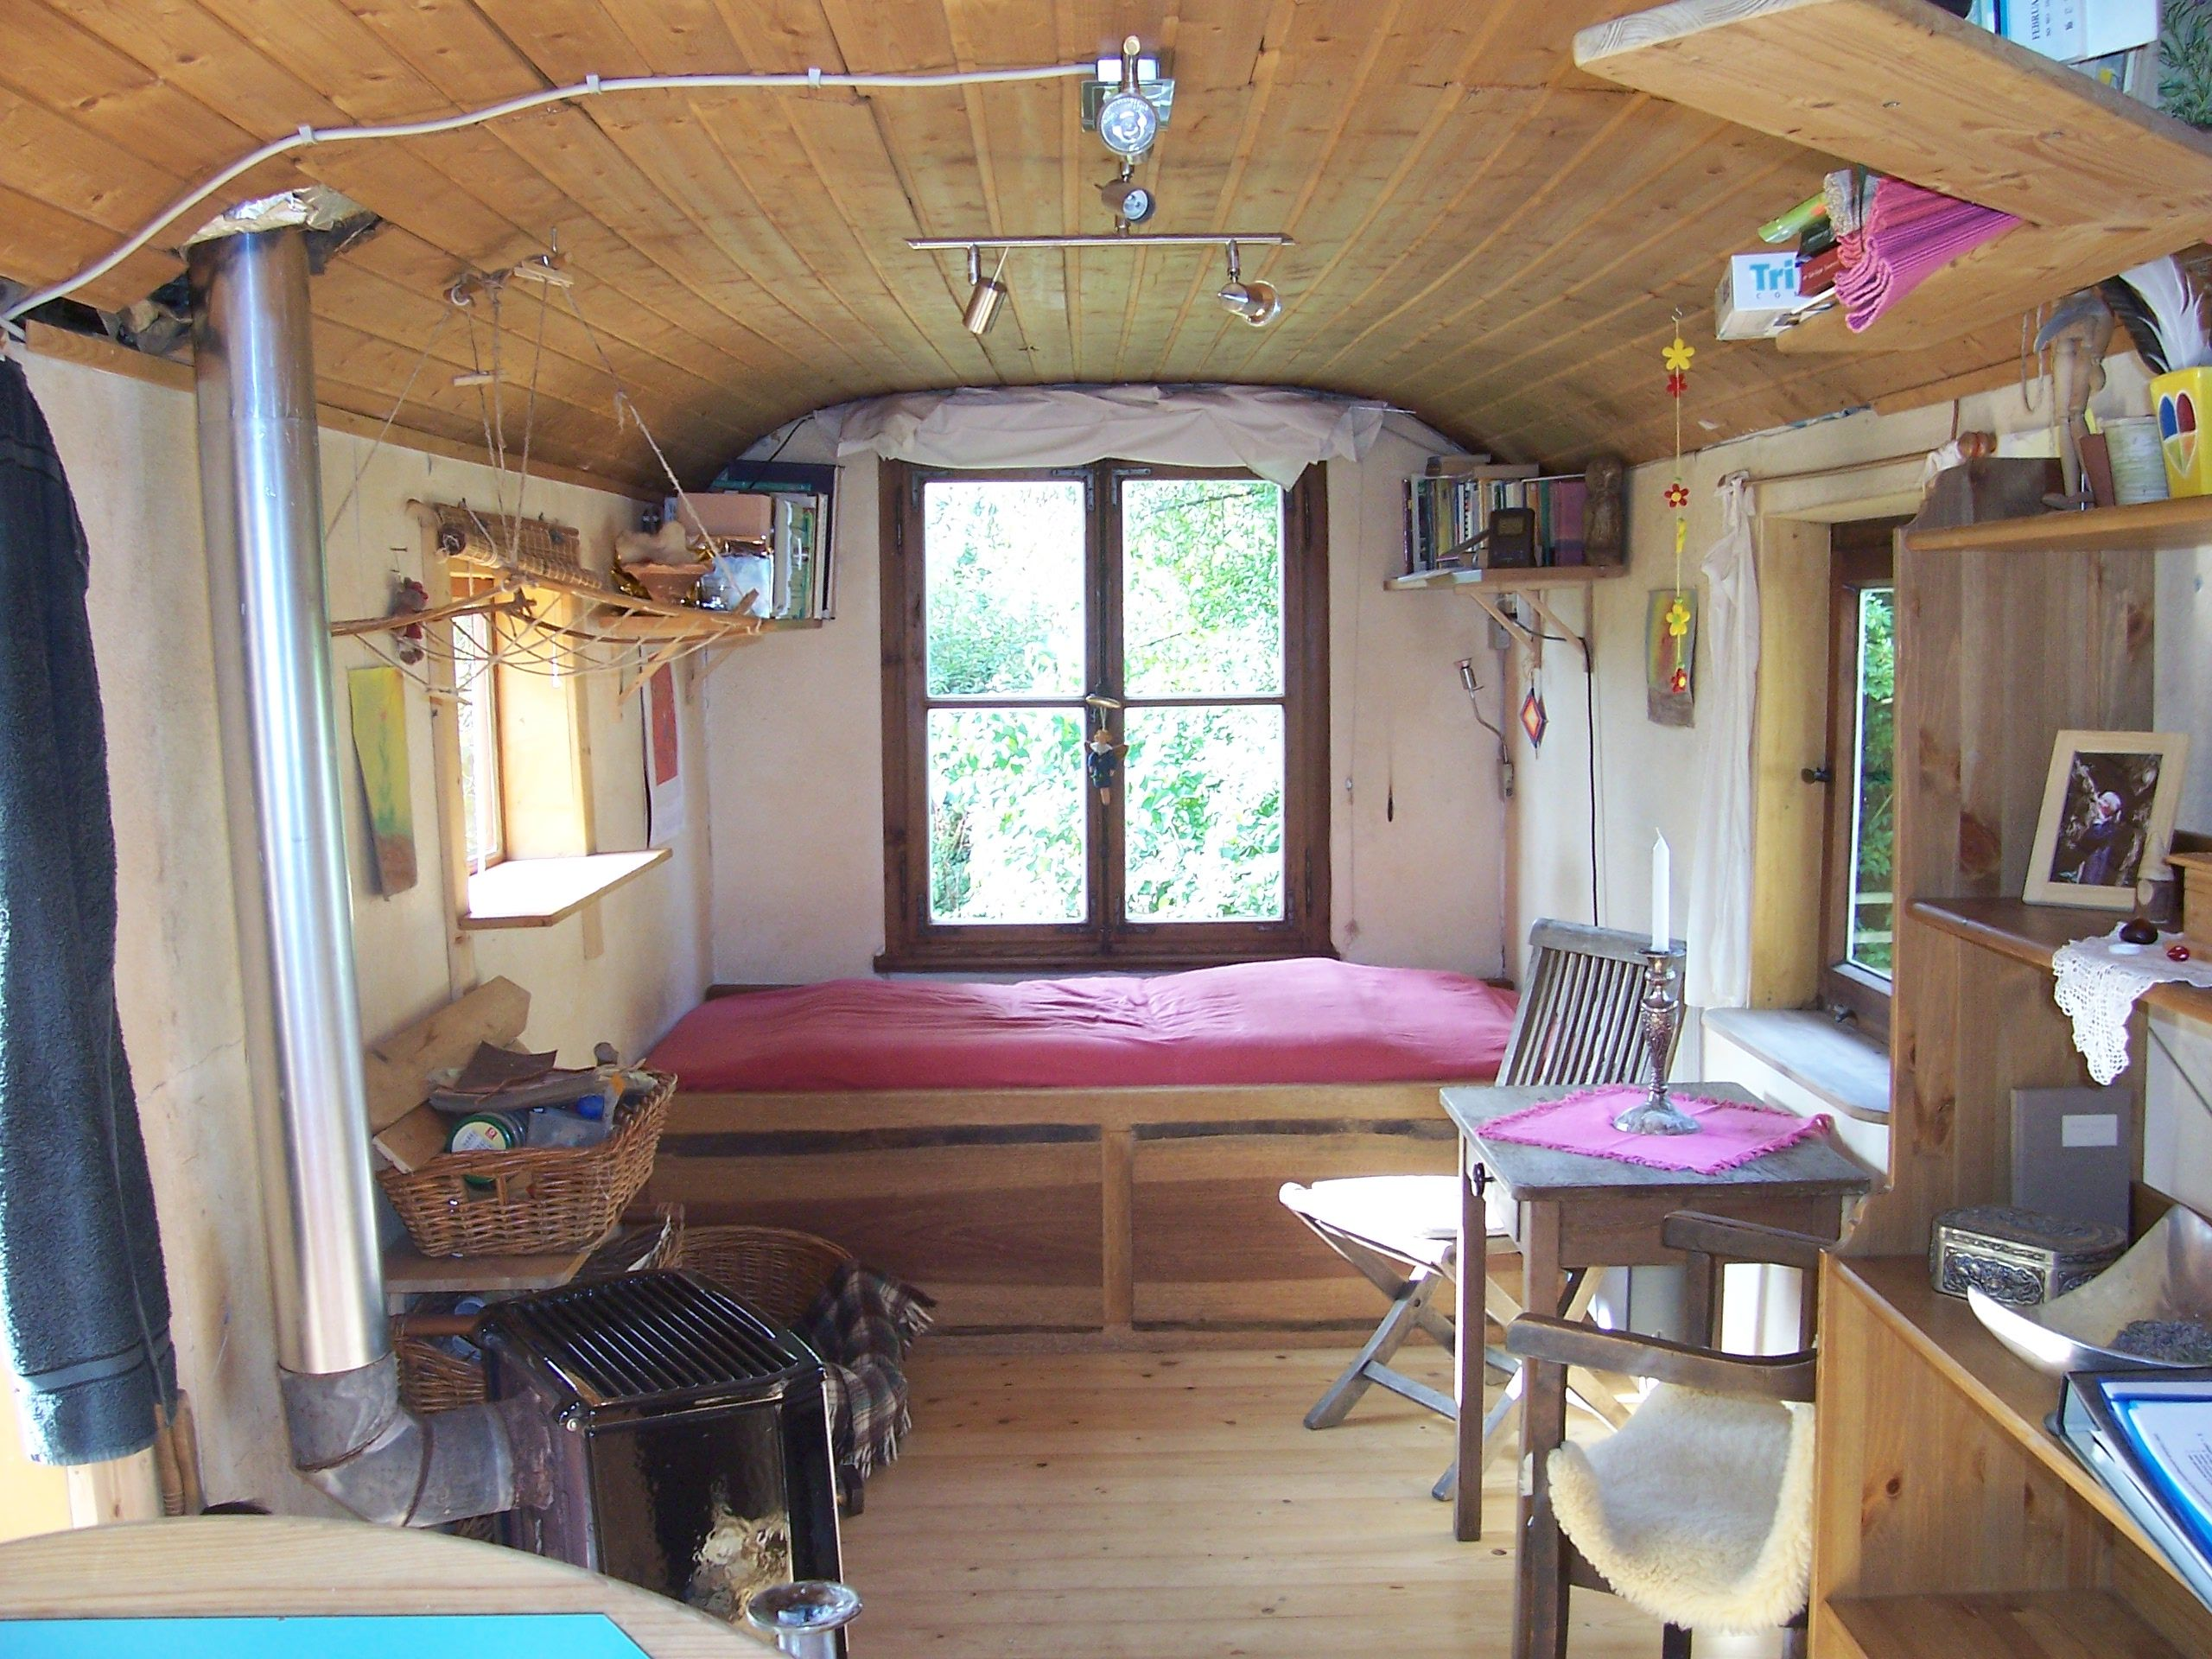 bildergebnis f r bauwagen innenausbau a northwoods cabin pinterest tiny houses shepherds. Black Bedroom Furniture Sets. Home Design Ideas